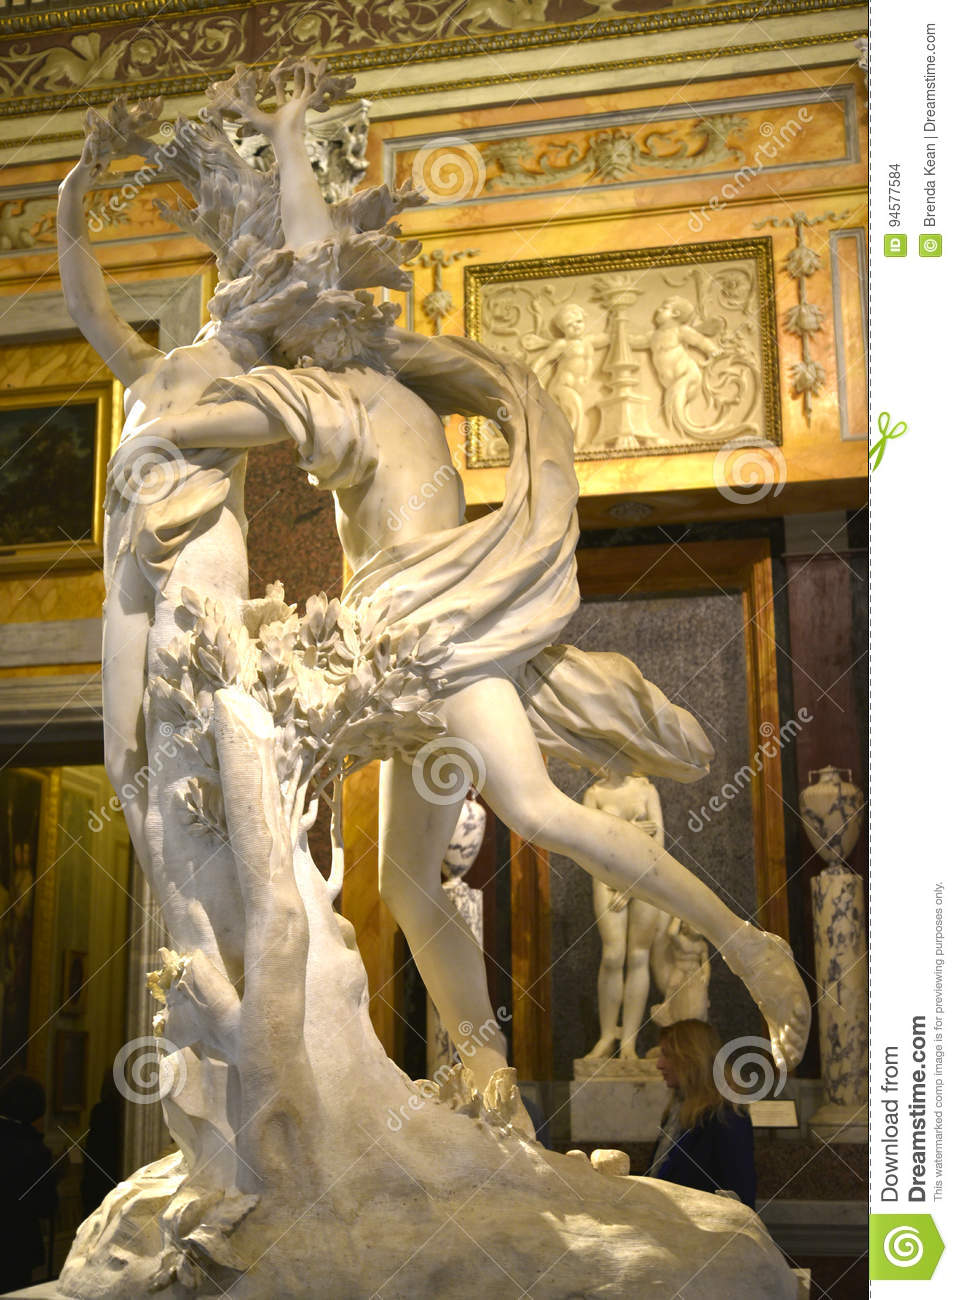 Www Bartocci Porte Finestre It bernini statue in the galleria borghese rome italy editorial